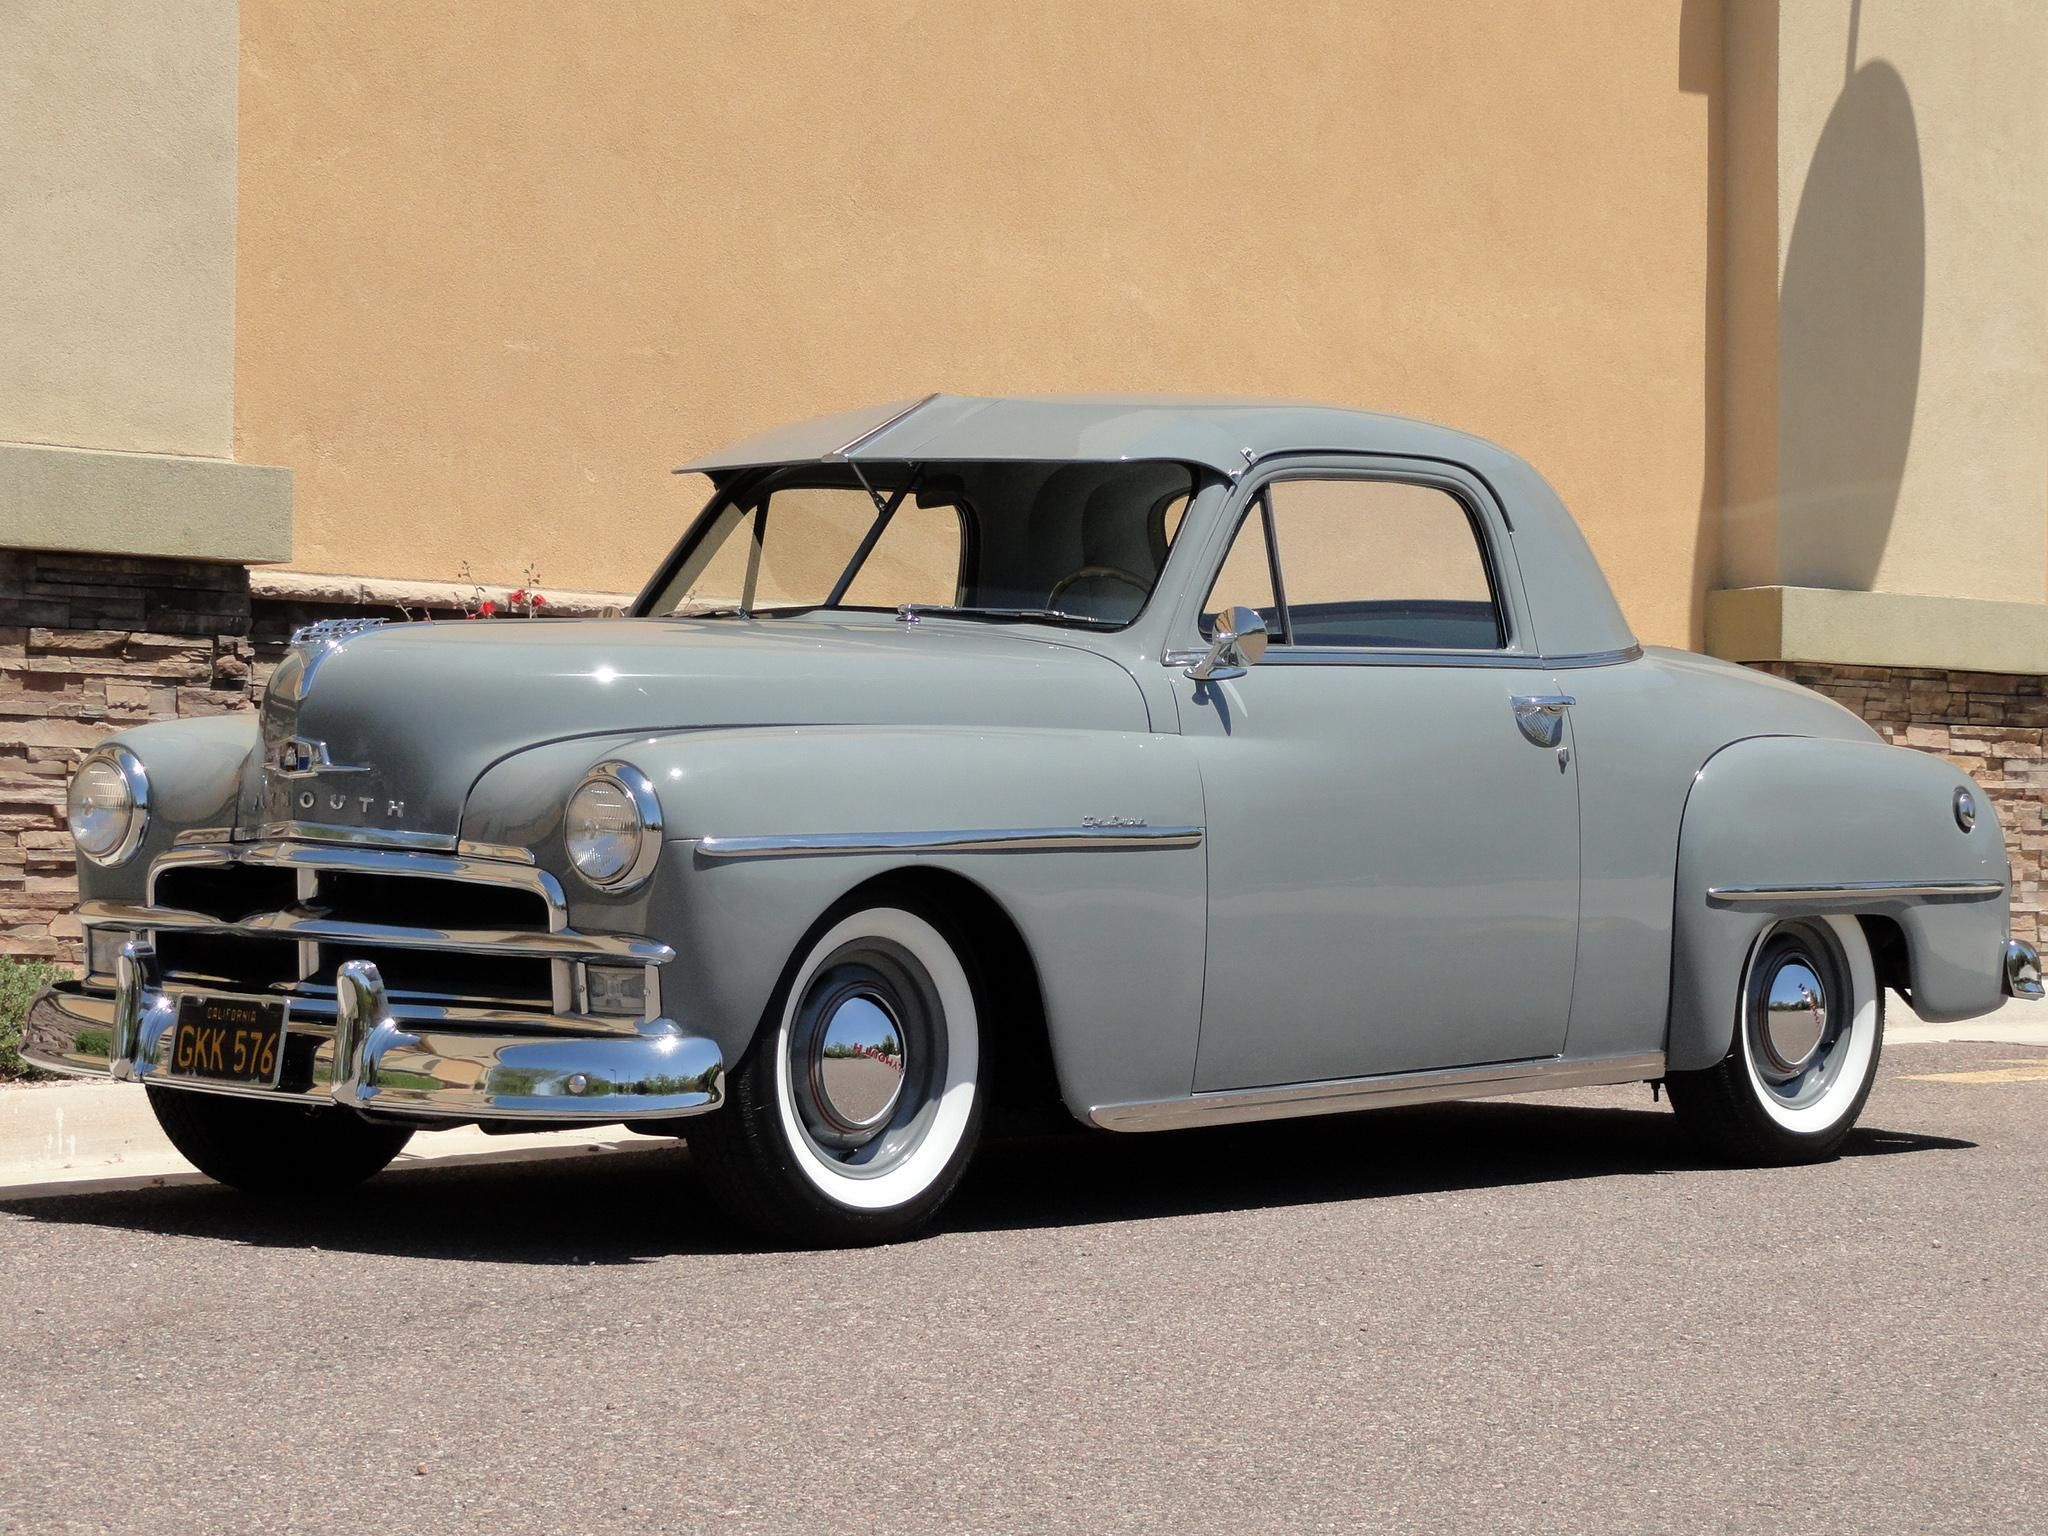 1950 plymouth deluxe coupe maintenance restoration of old vintage Plymouth 2 Door Models 1940 1950 1950 plymouth deluxe coupe maintenance restoration of old vintage vehicles the material for new cogs casters gears pads could be cast polyamide which i